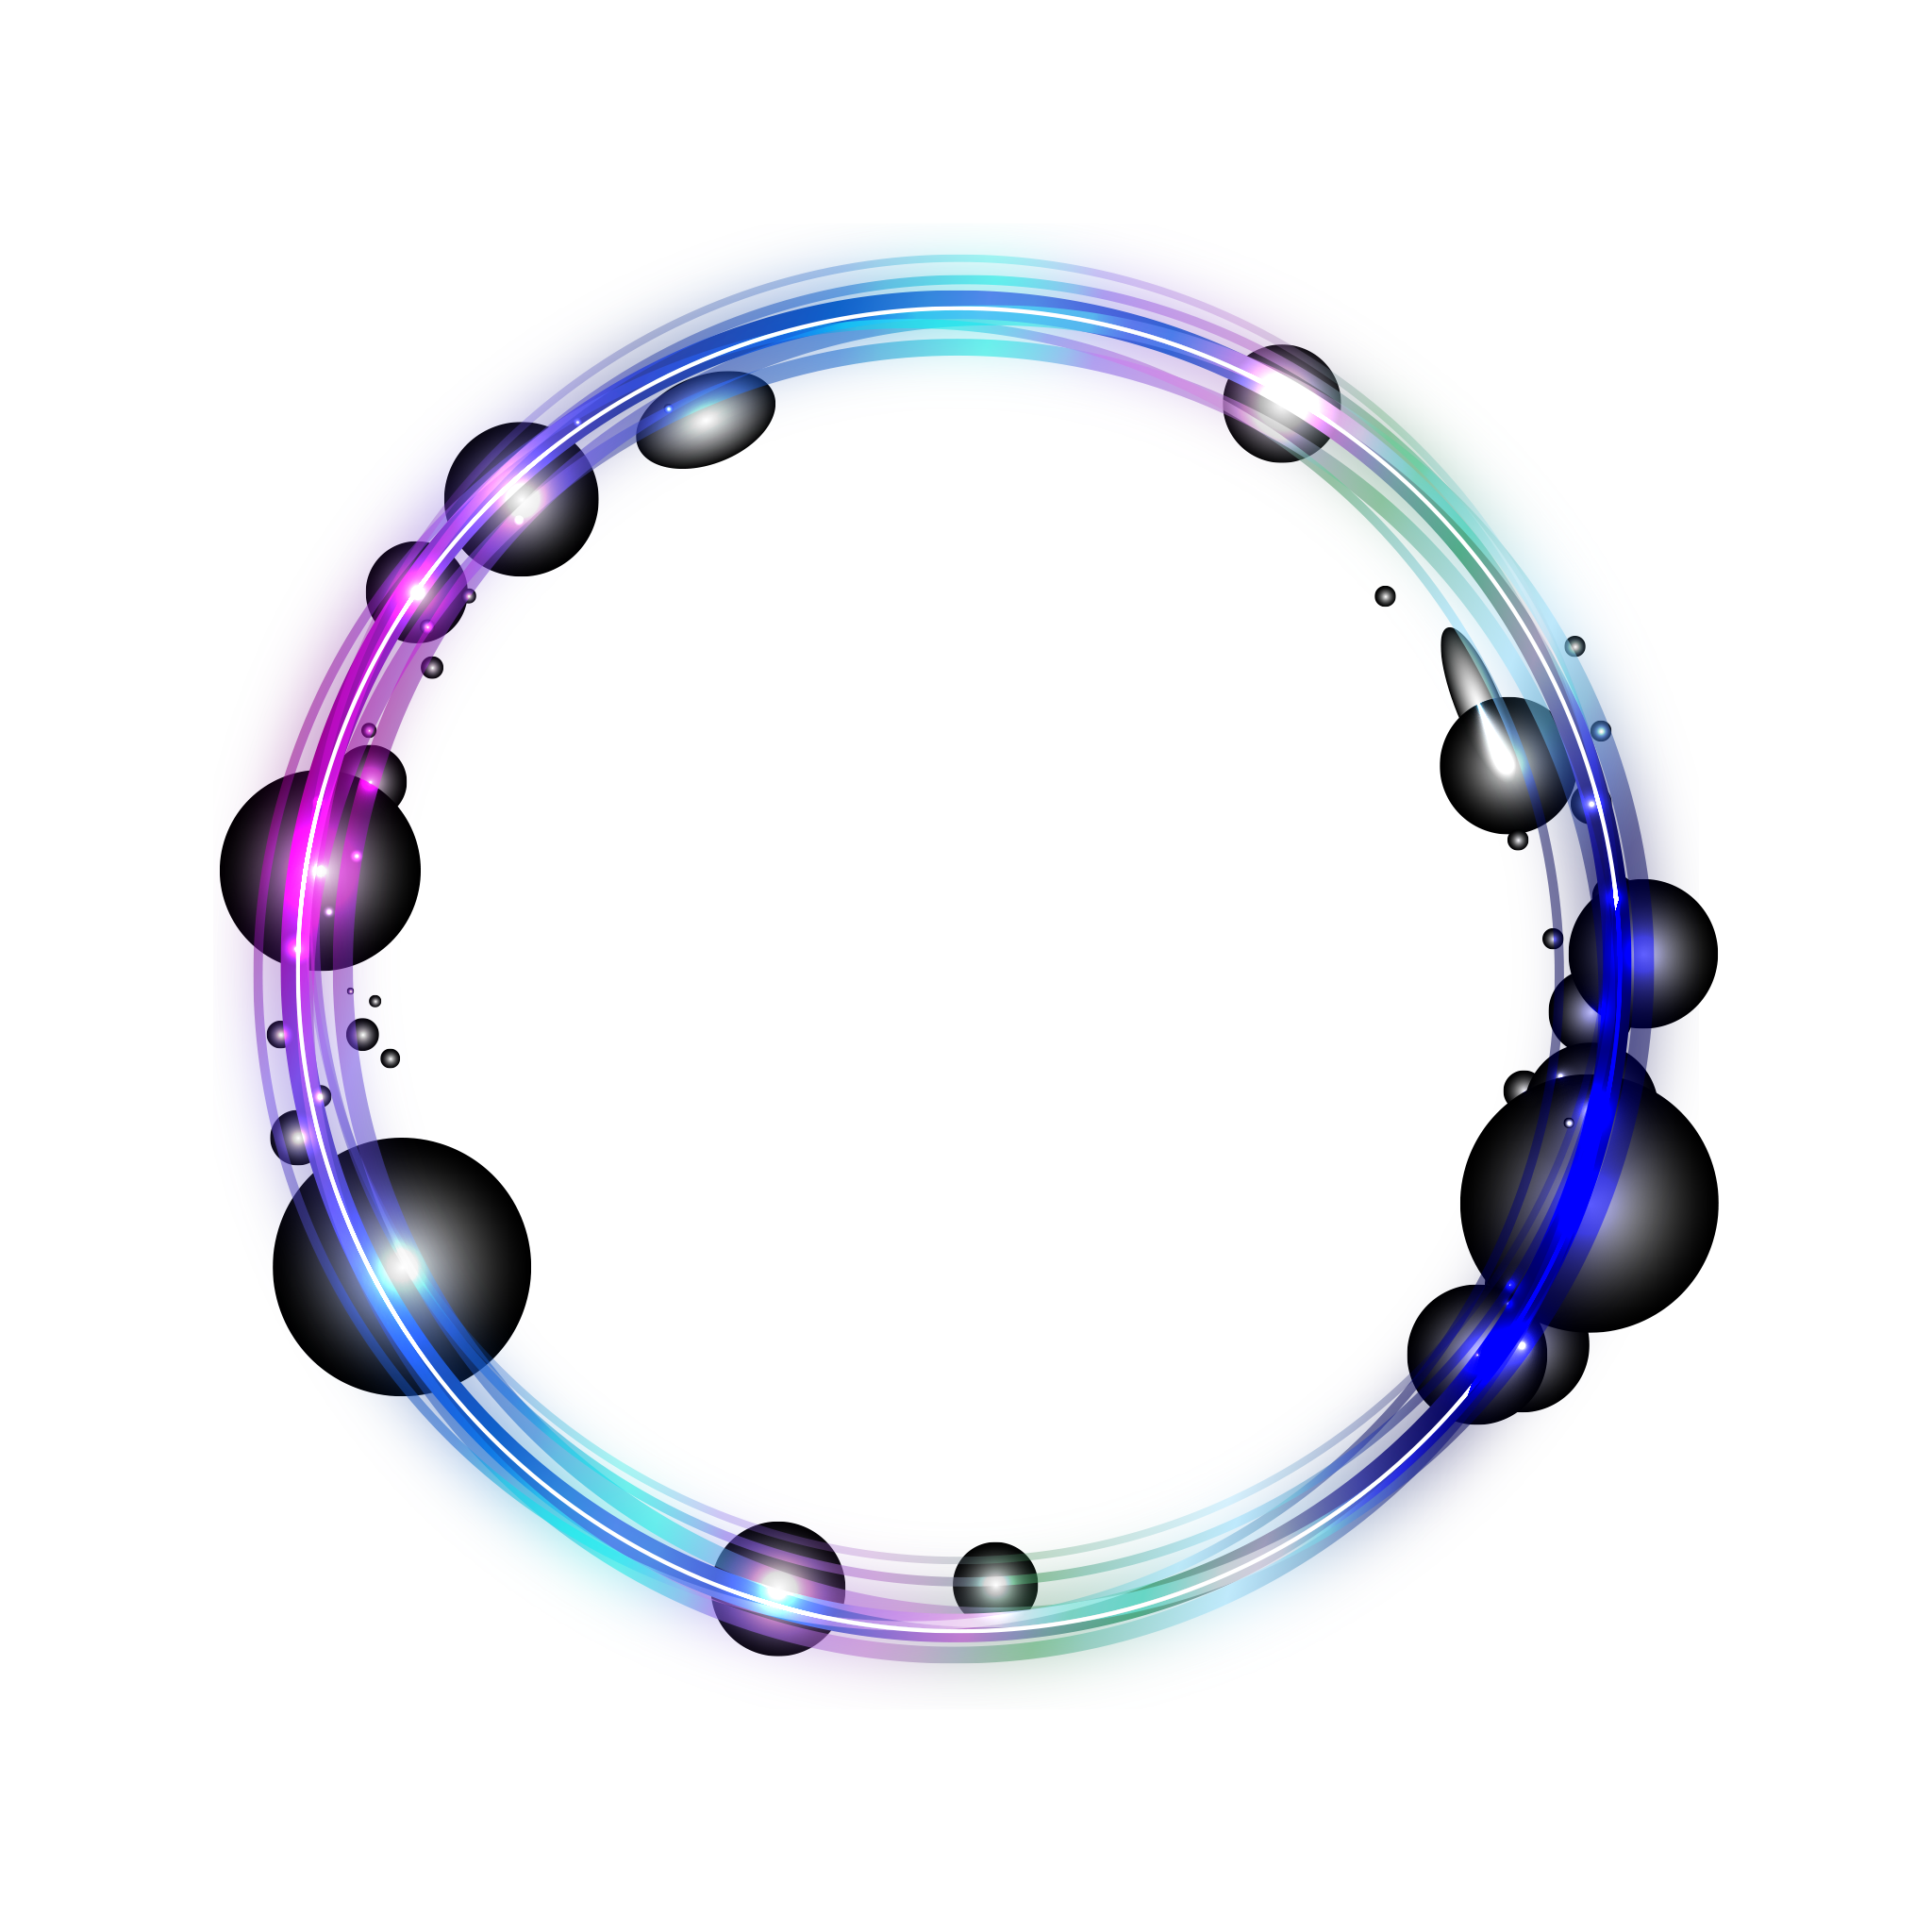 Circle glow png. Hd image free download